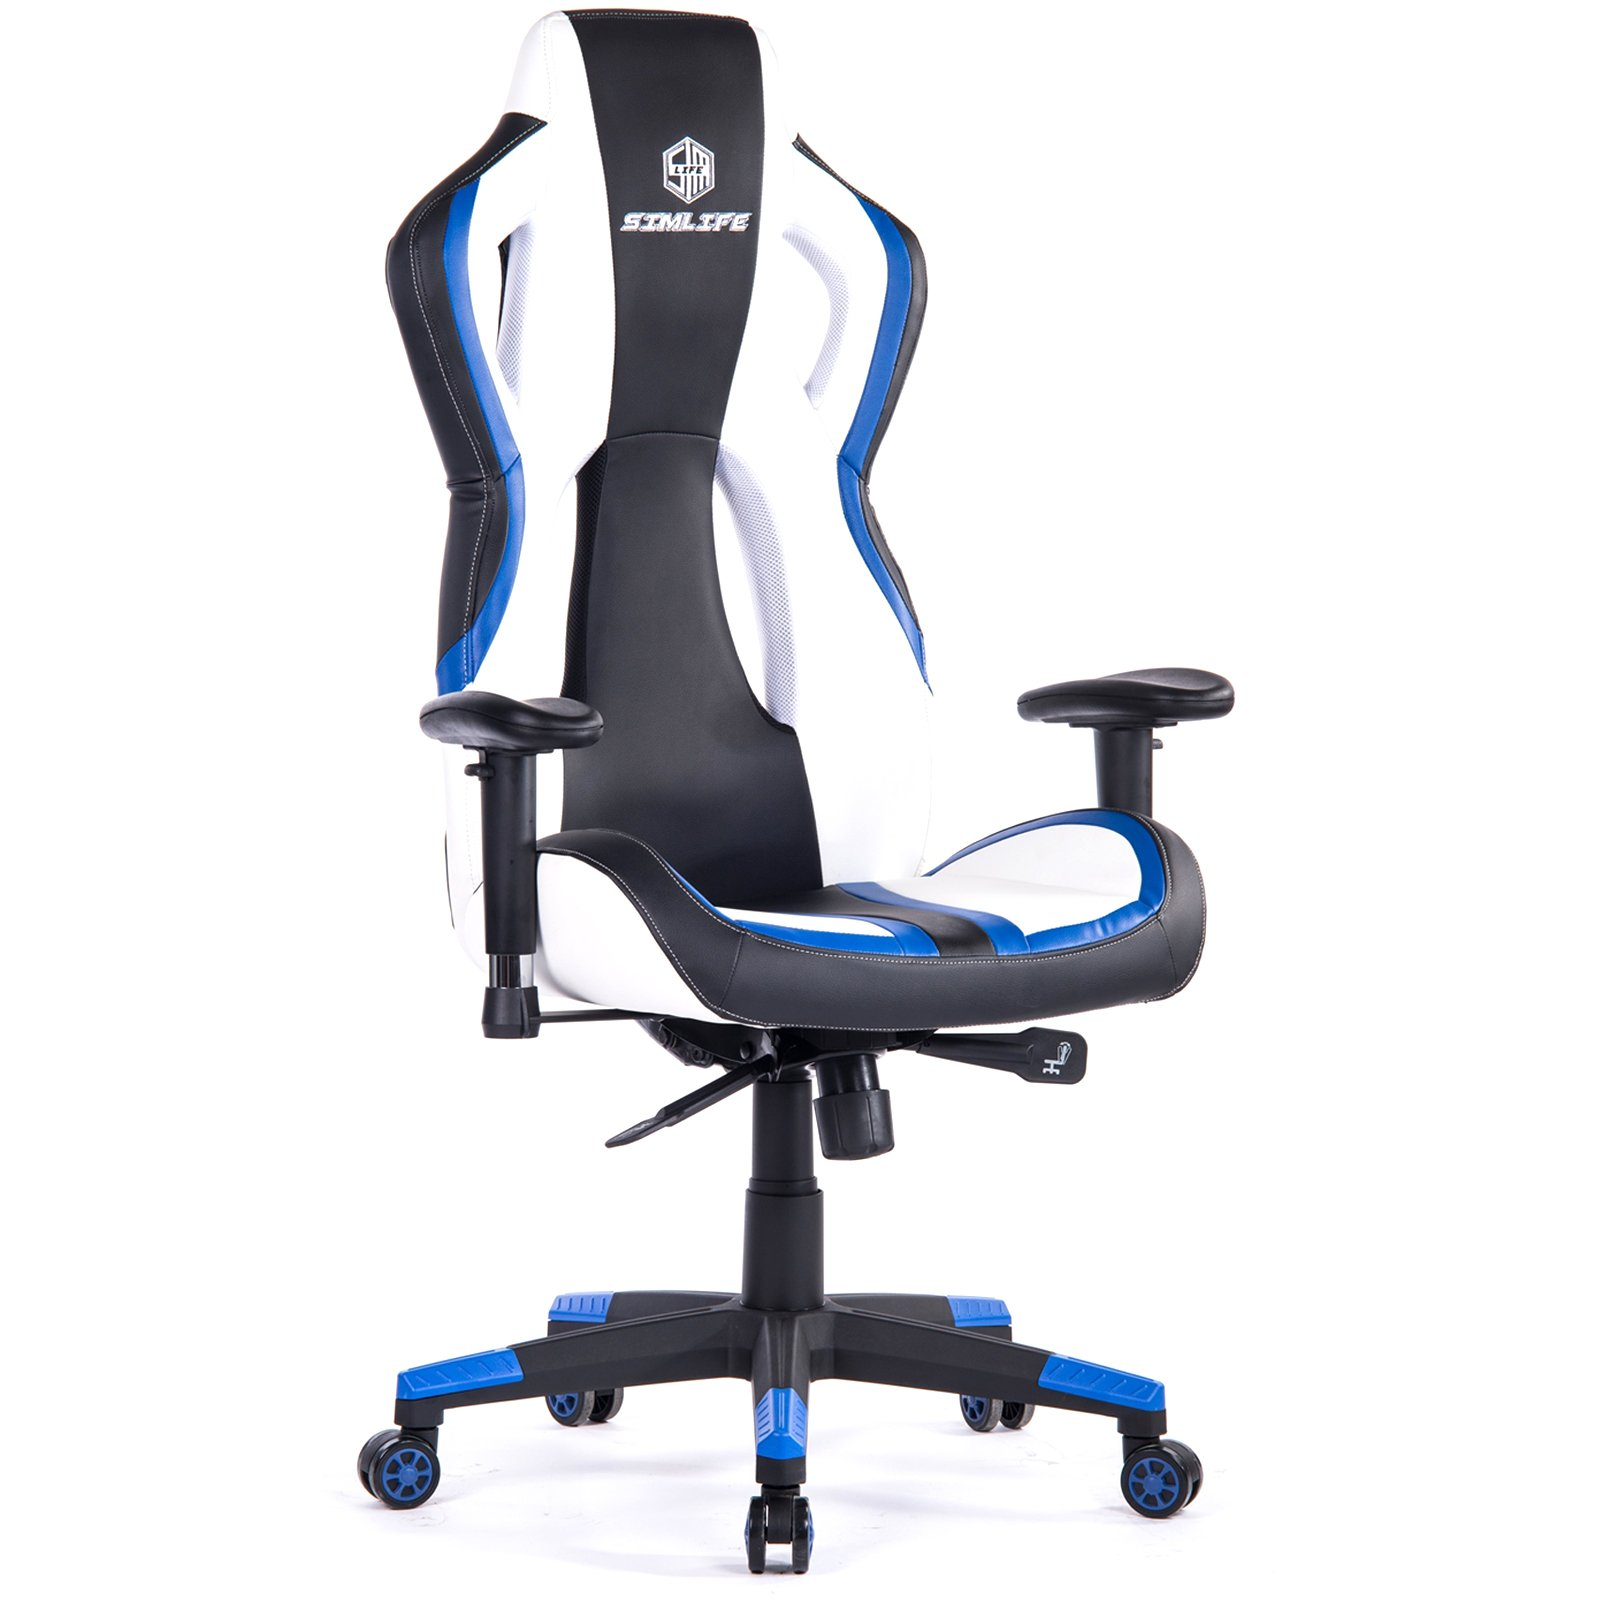 SimLife Executive Swivel Leather Gaming Racing Chair High-Back Office Computer Adjustable Desk Task Chair Blue/White